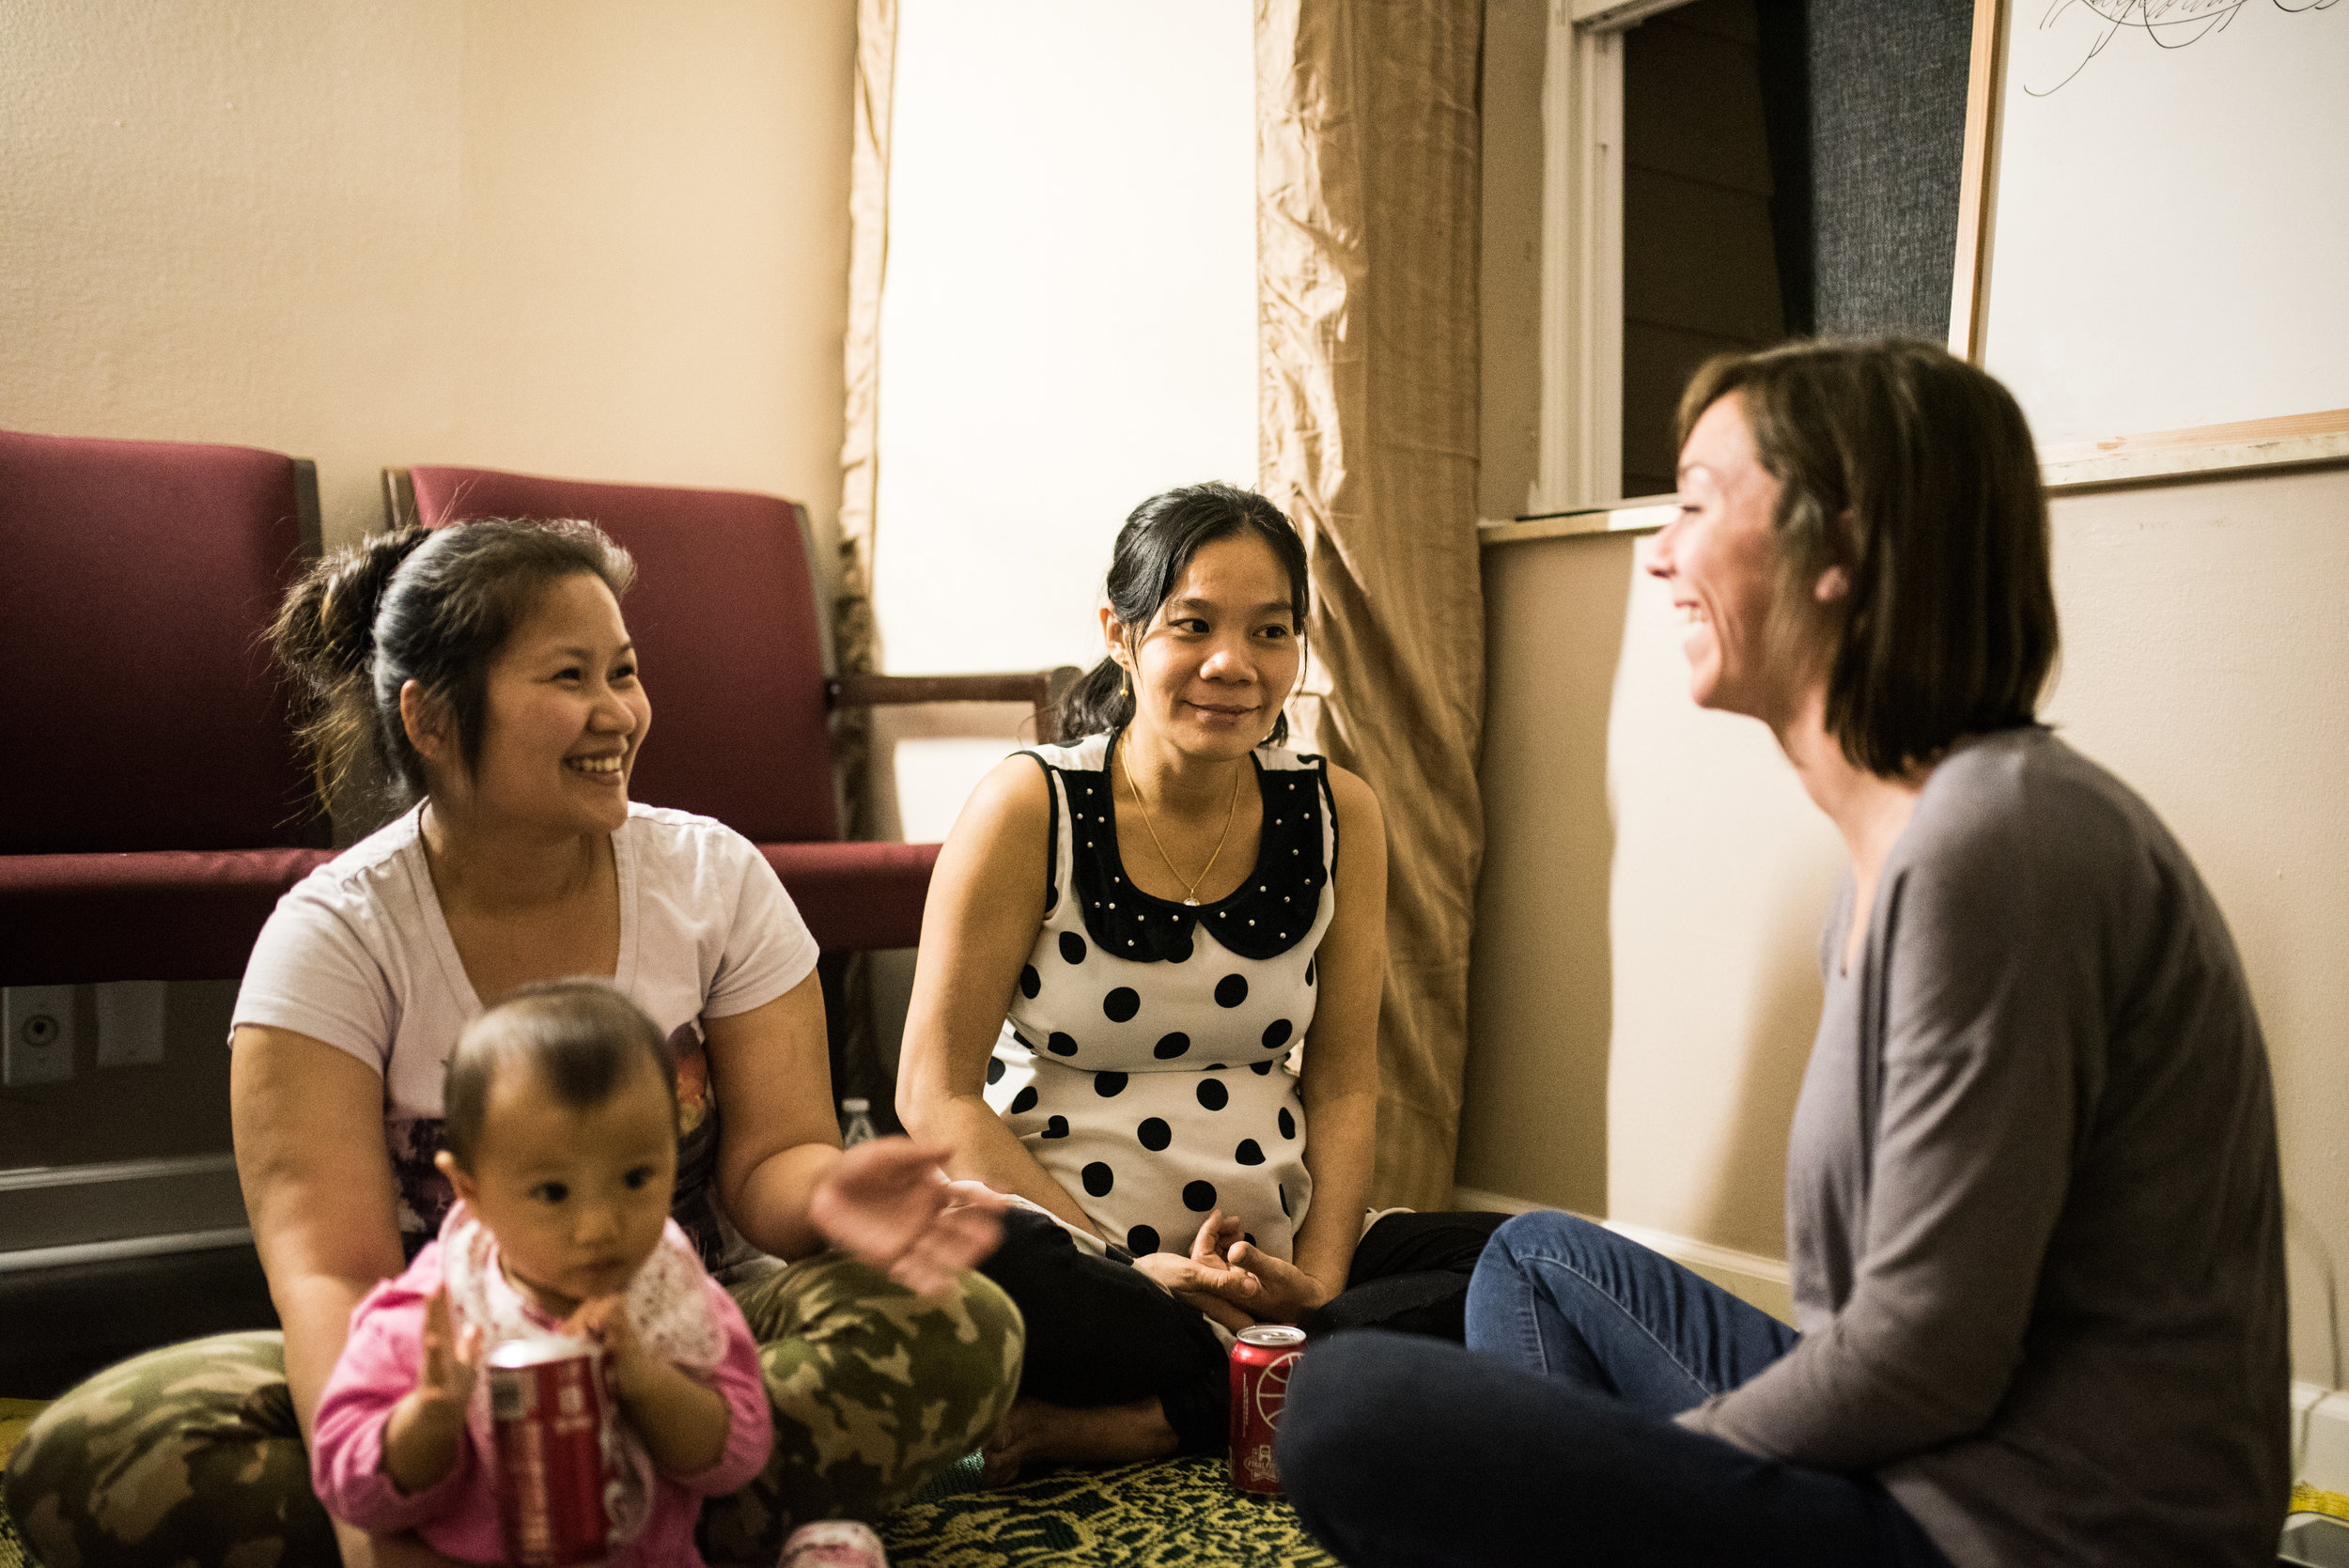 Internship ignited a desire to service in Leah that continues to bear fruit. She now serves as a doula and has offered her services free of charge to refugees. Pictured above, she assists during a bible study offered to Burmese refugees.